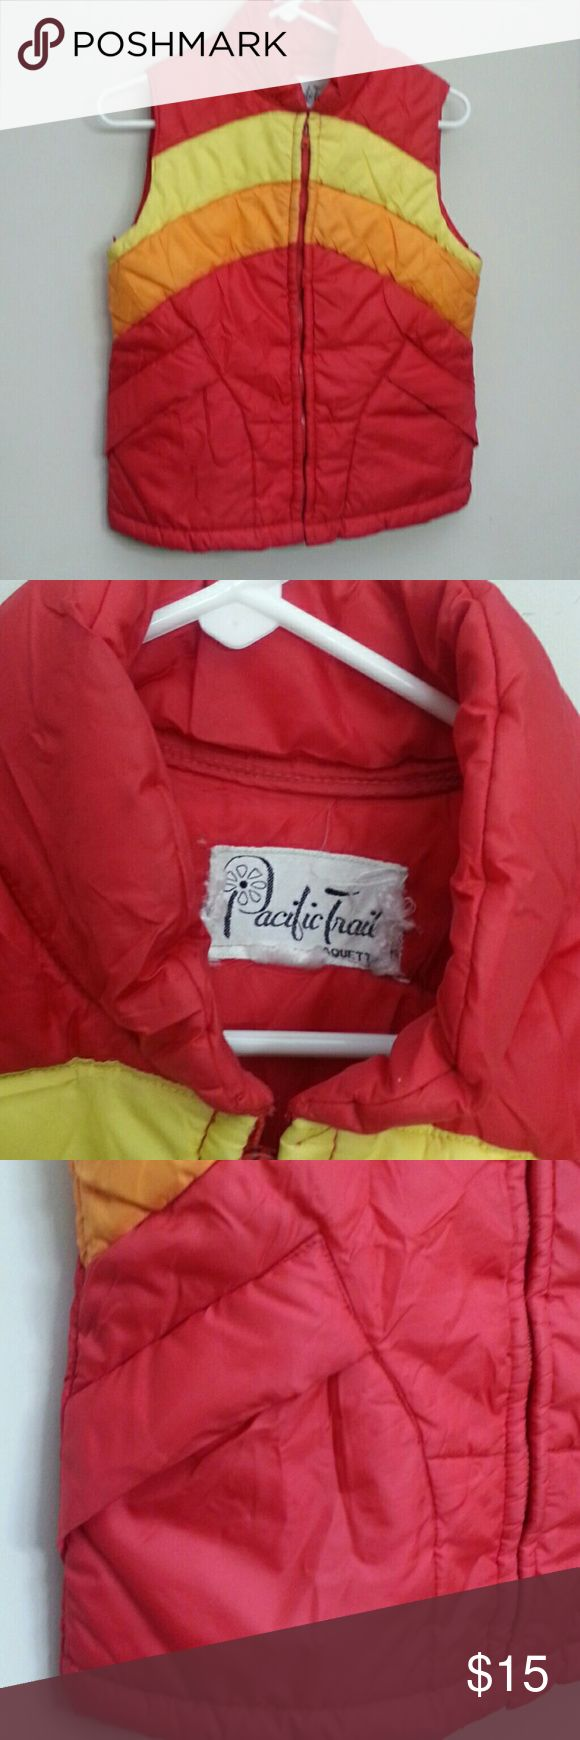 "Awesome Retro 80's Vest Water repellant puffer in bright red orang and yellow.  In good used condition, free of stains, rips, wear. The colors are not as bright as when new though.  Tag is a little tattered.  21""L  17""pit to pit 17"" waist pacific coast Jackets & Coats Vests"